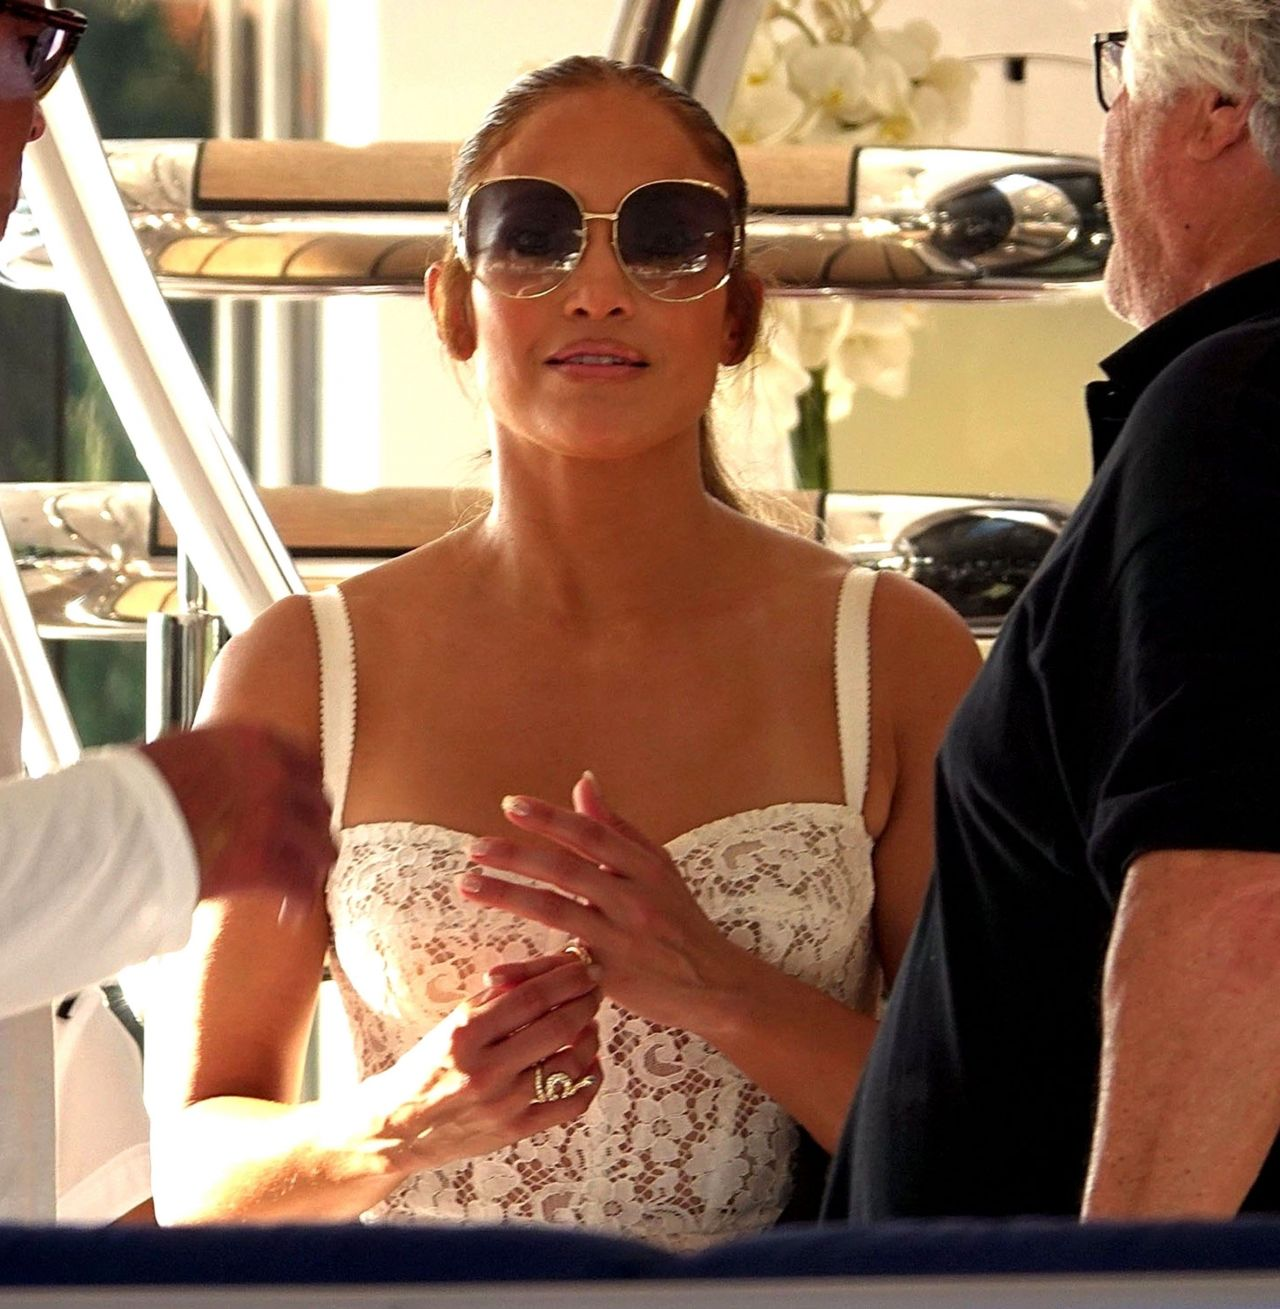 Jennifer Lopez and Alex Rodriguez on Their Luxury Yacht in Capri 08/07/2018